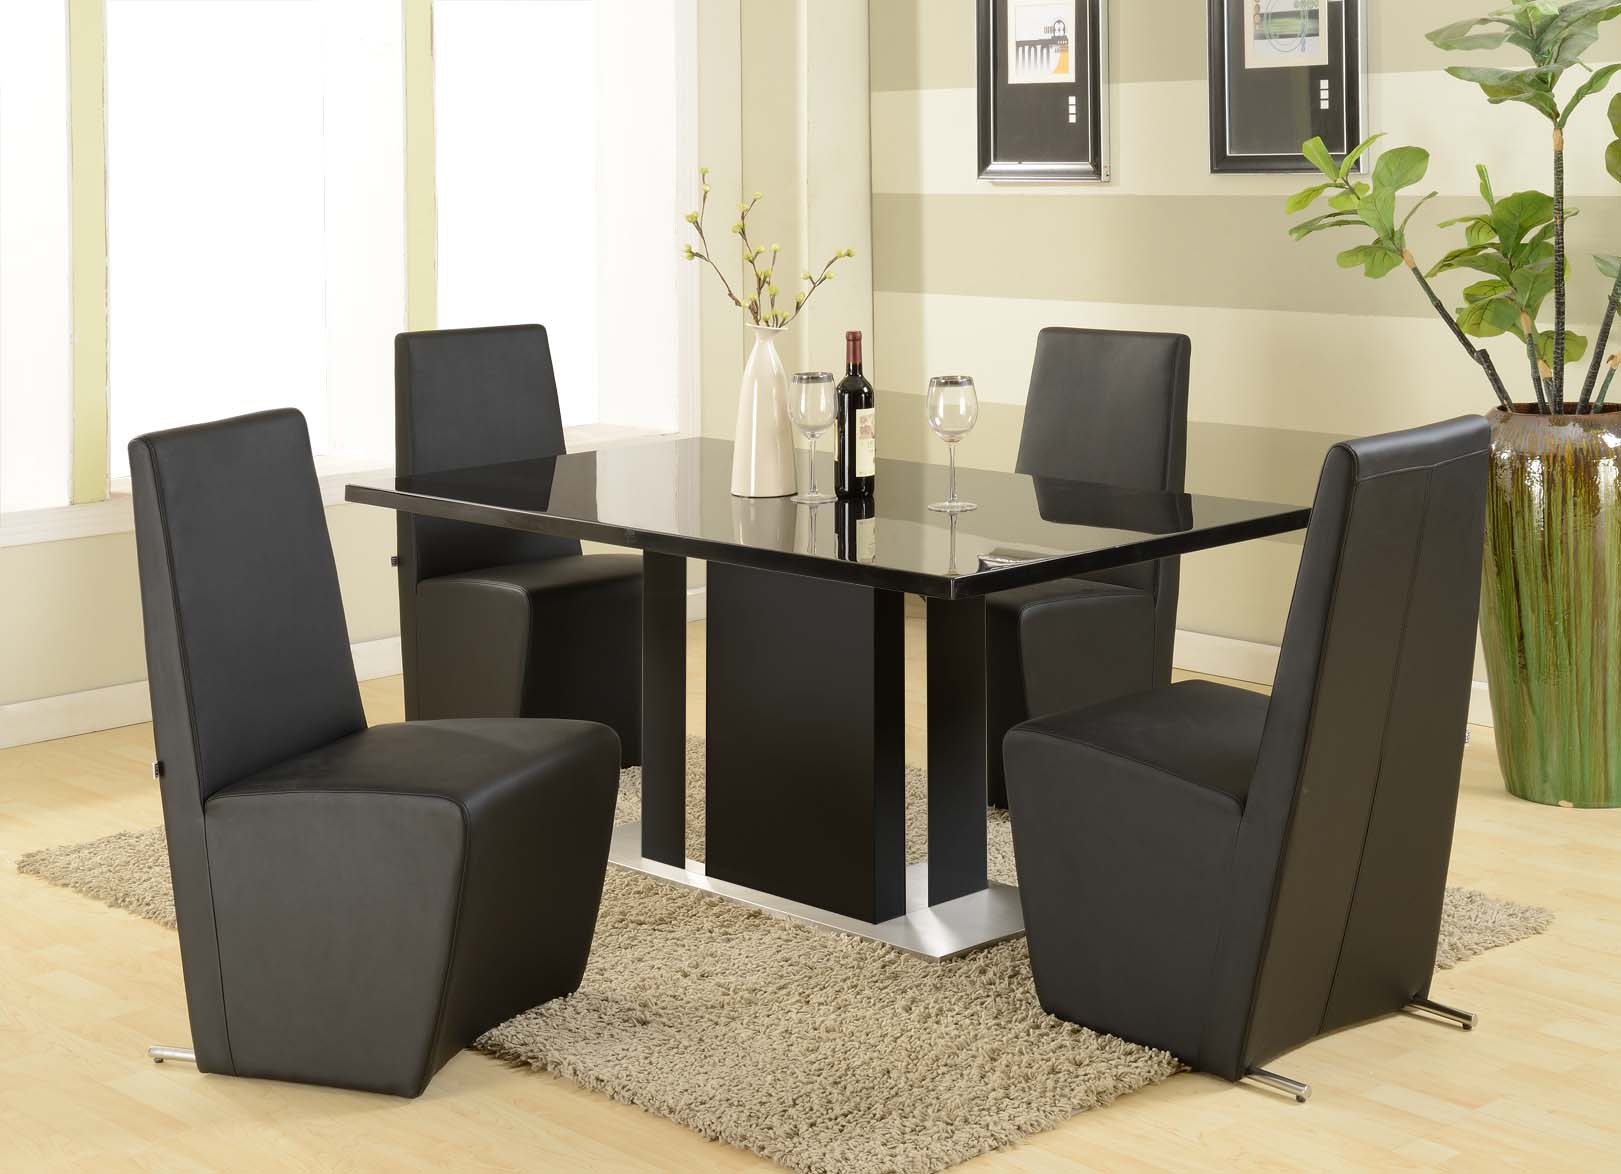 Modern furniture table home design roosa for Modern dining furniture